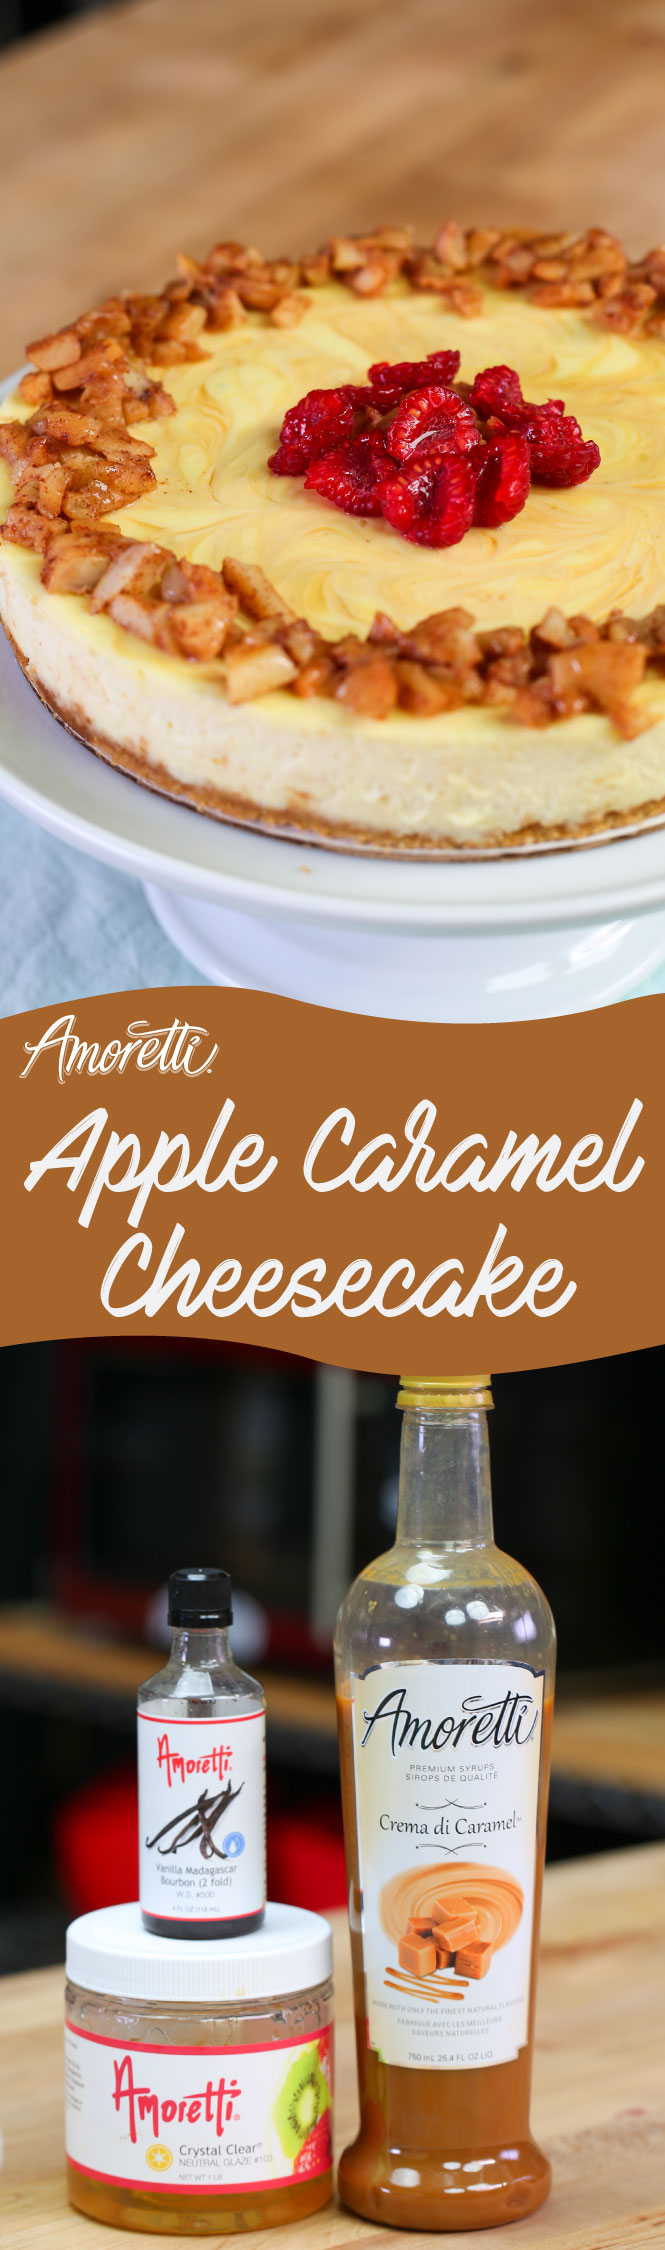 Amoretti Apple Caramel Cheesecake: Our apple caramel cheesecake is great dessert to enjoy with the family, so creamy and so good!